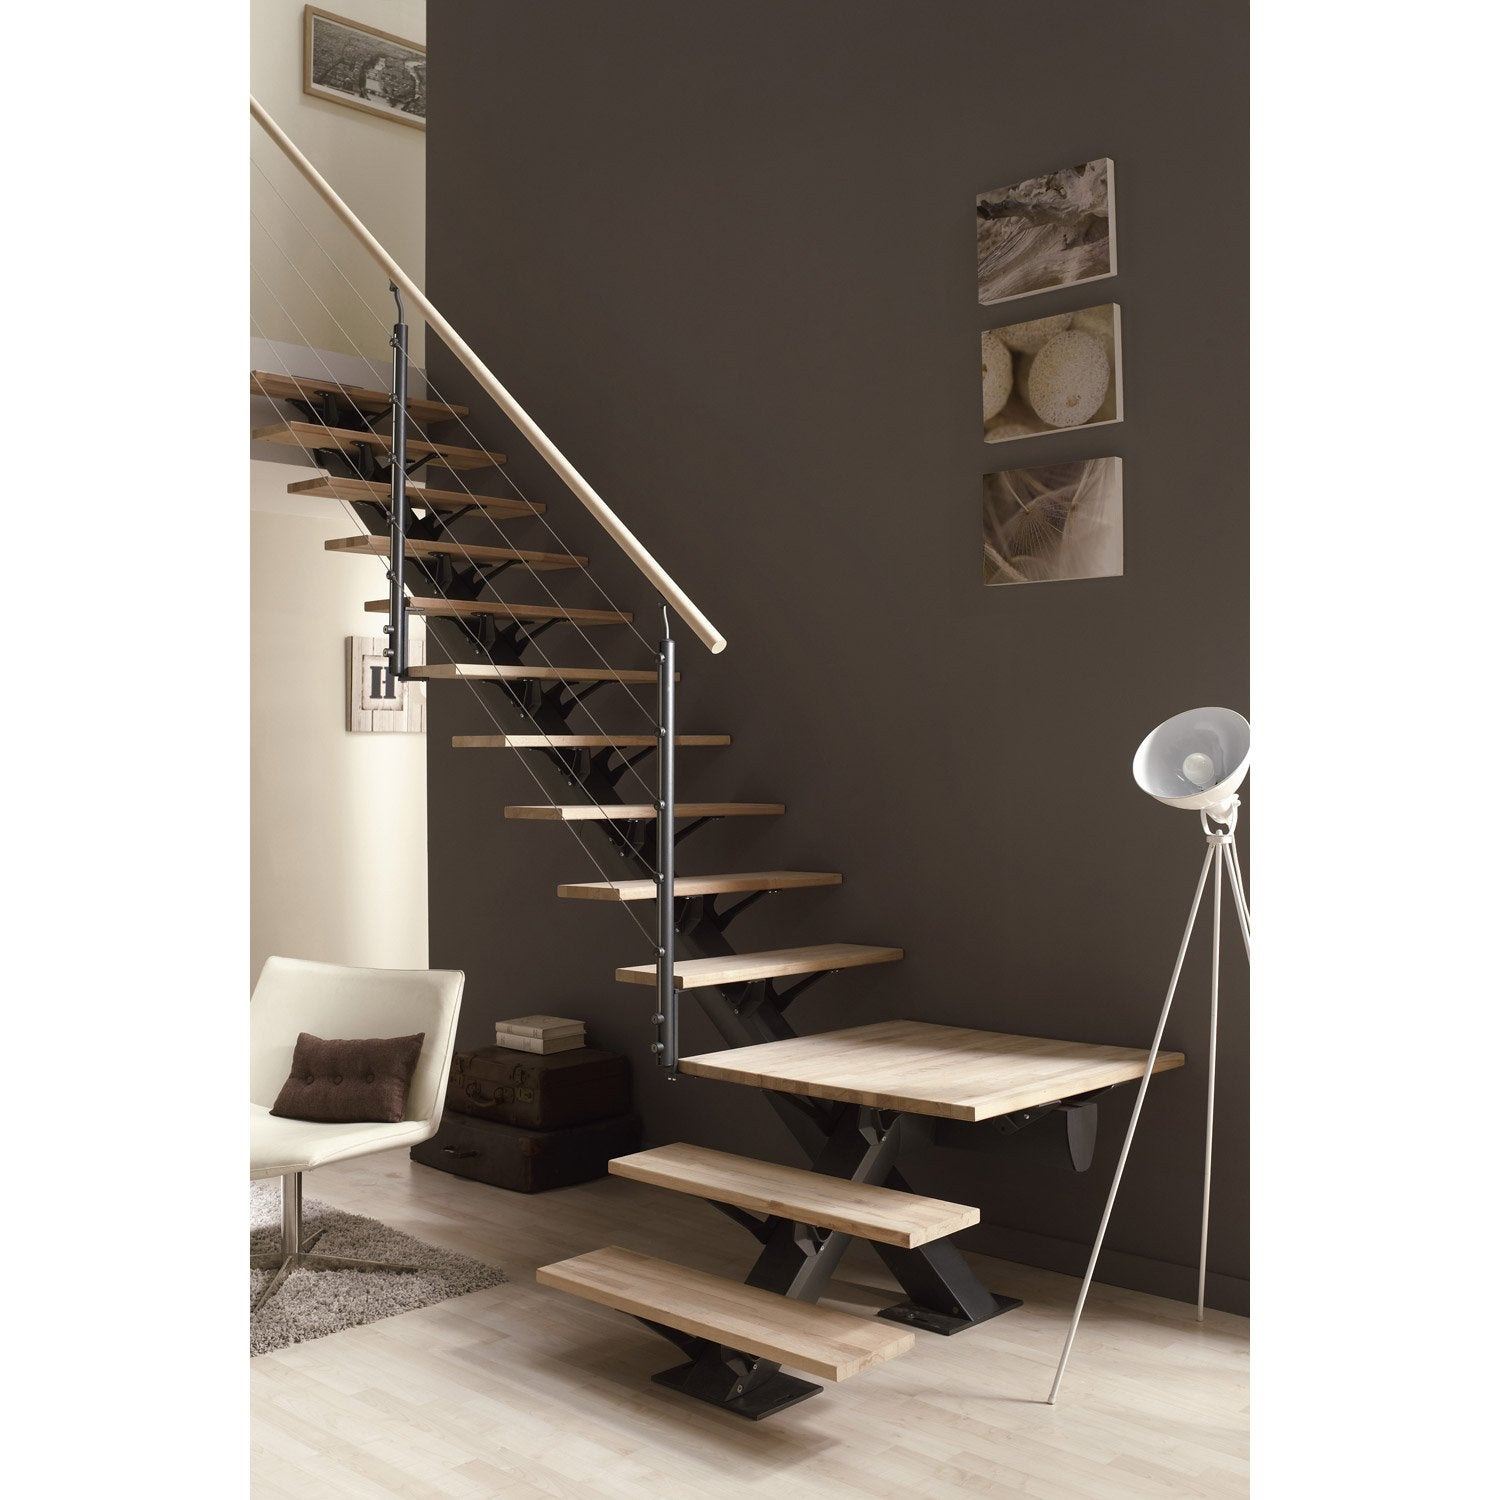 Escalier quart tournant mona structure aluminium marche for Escalier interieur leroy merlin